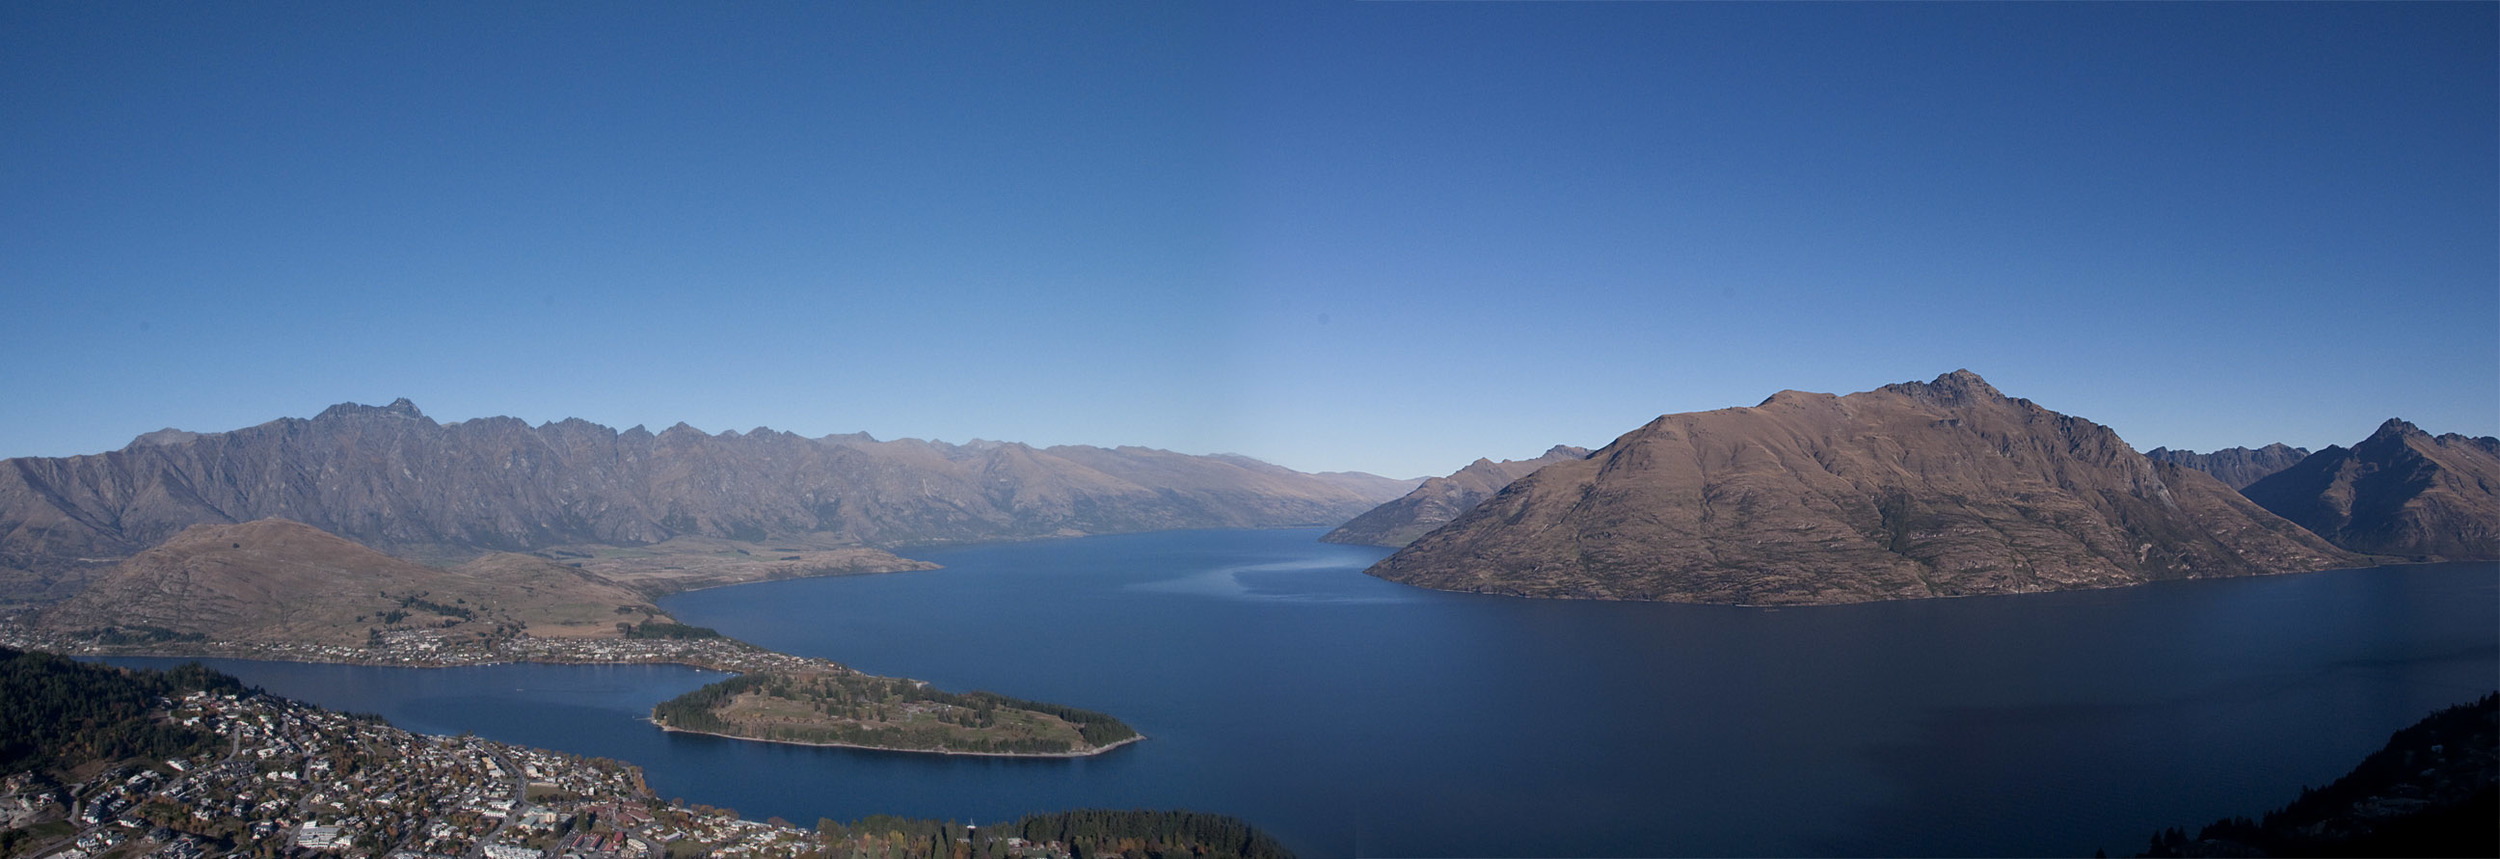 view_from_Gondola_deck_20110430_Queenstown_NZ_1.jpg